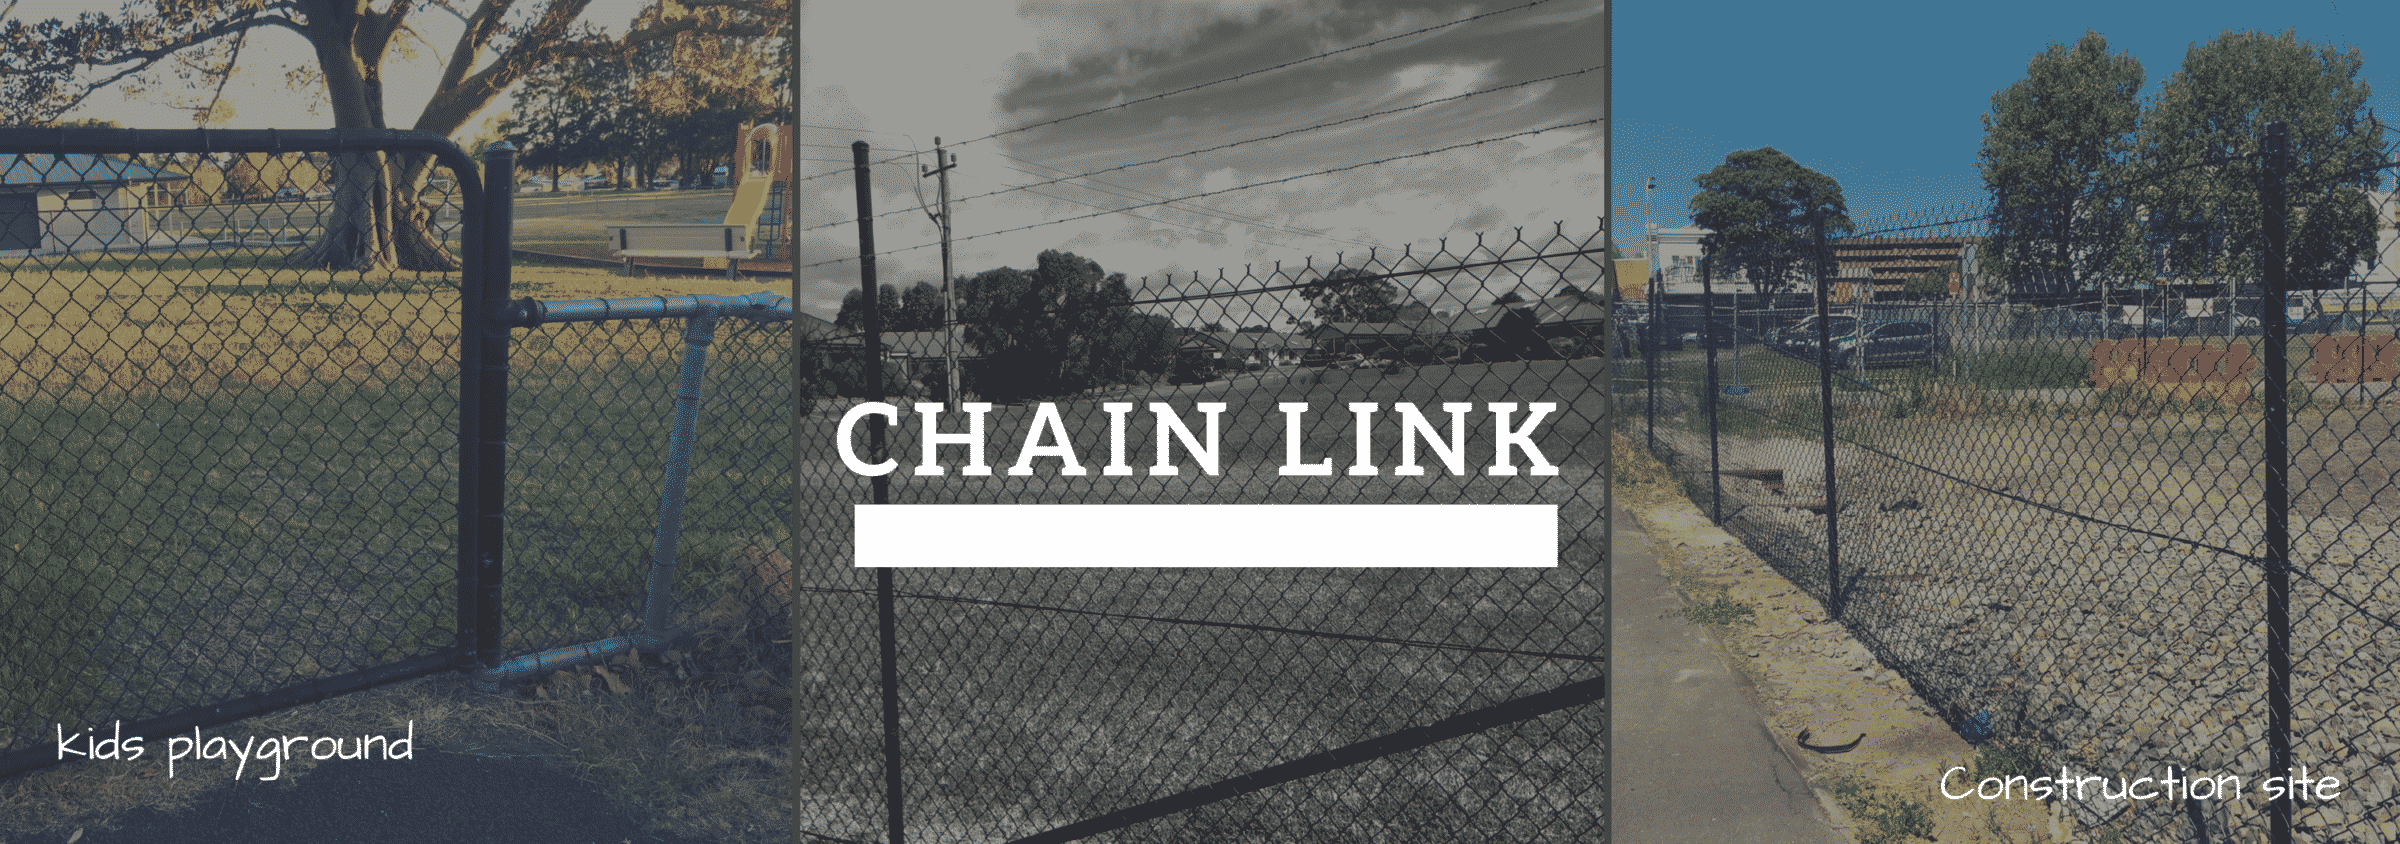 The Pros of Chain Link Fencing - Chain Link Fencing